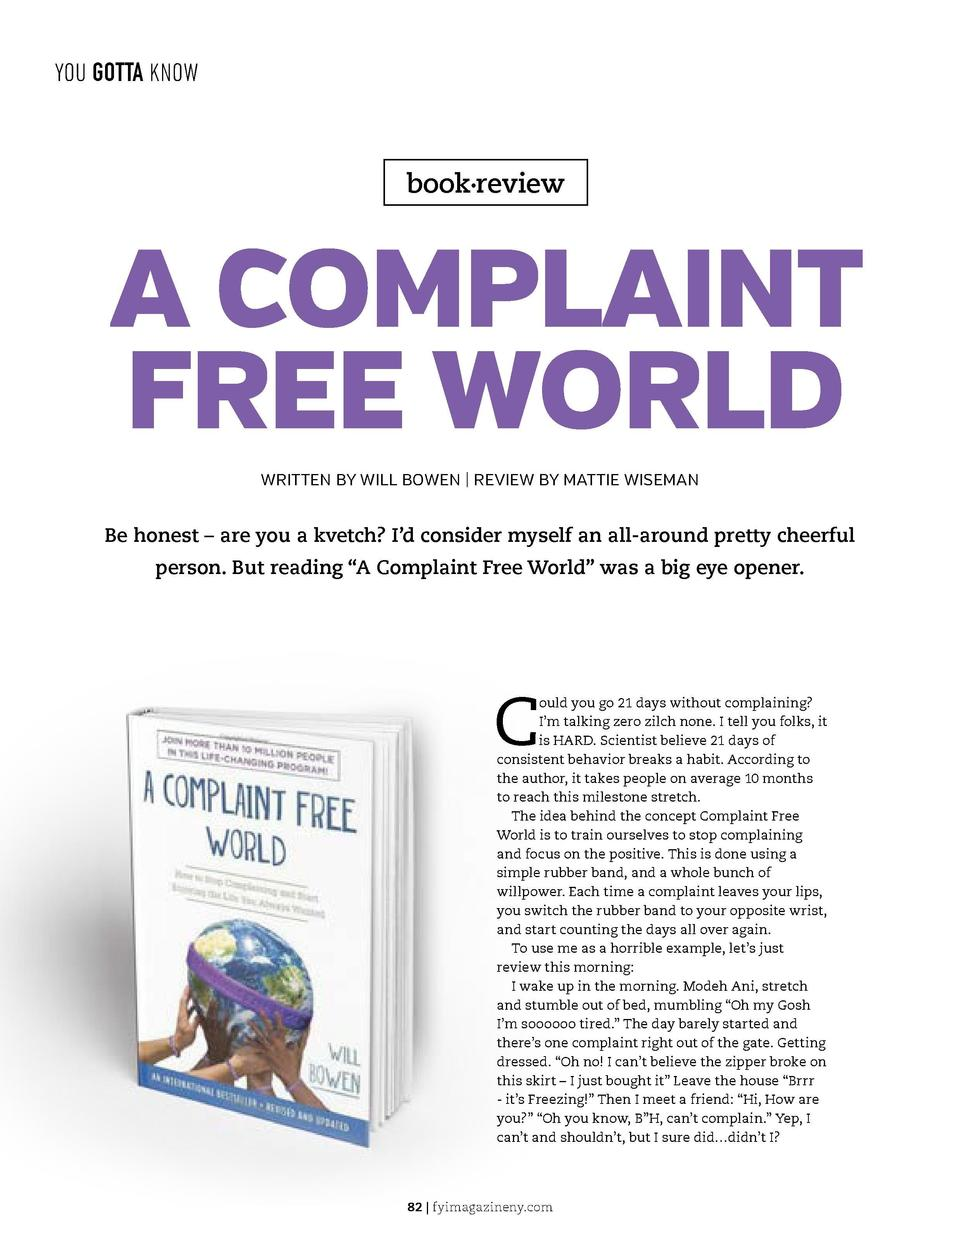 YOU GOTTA KNOW  YOU GOTTA KNOW  book   review  A COMPLAINT FREE WORLD WRITTEN BY WILL BOWEN   REVIEW BY MATTIE WISEMAN  Be...